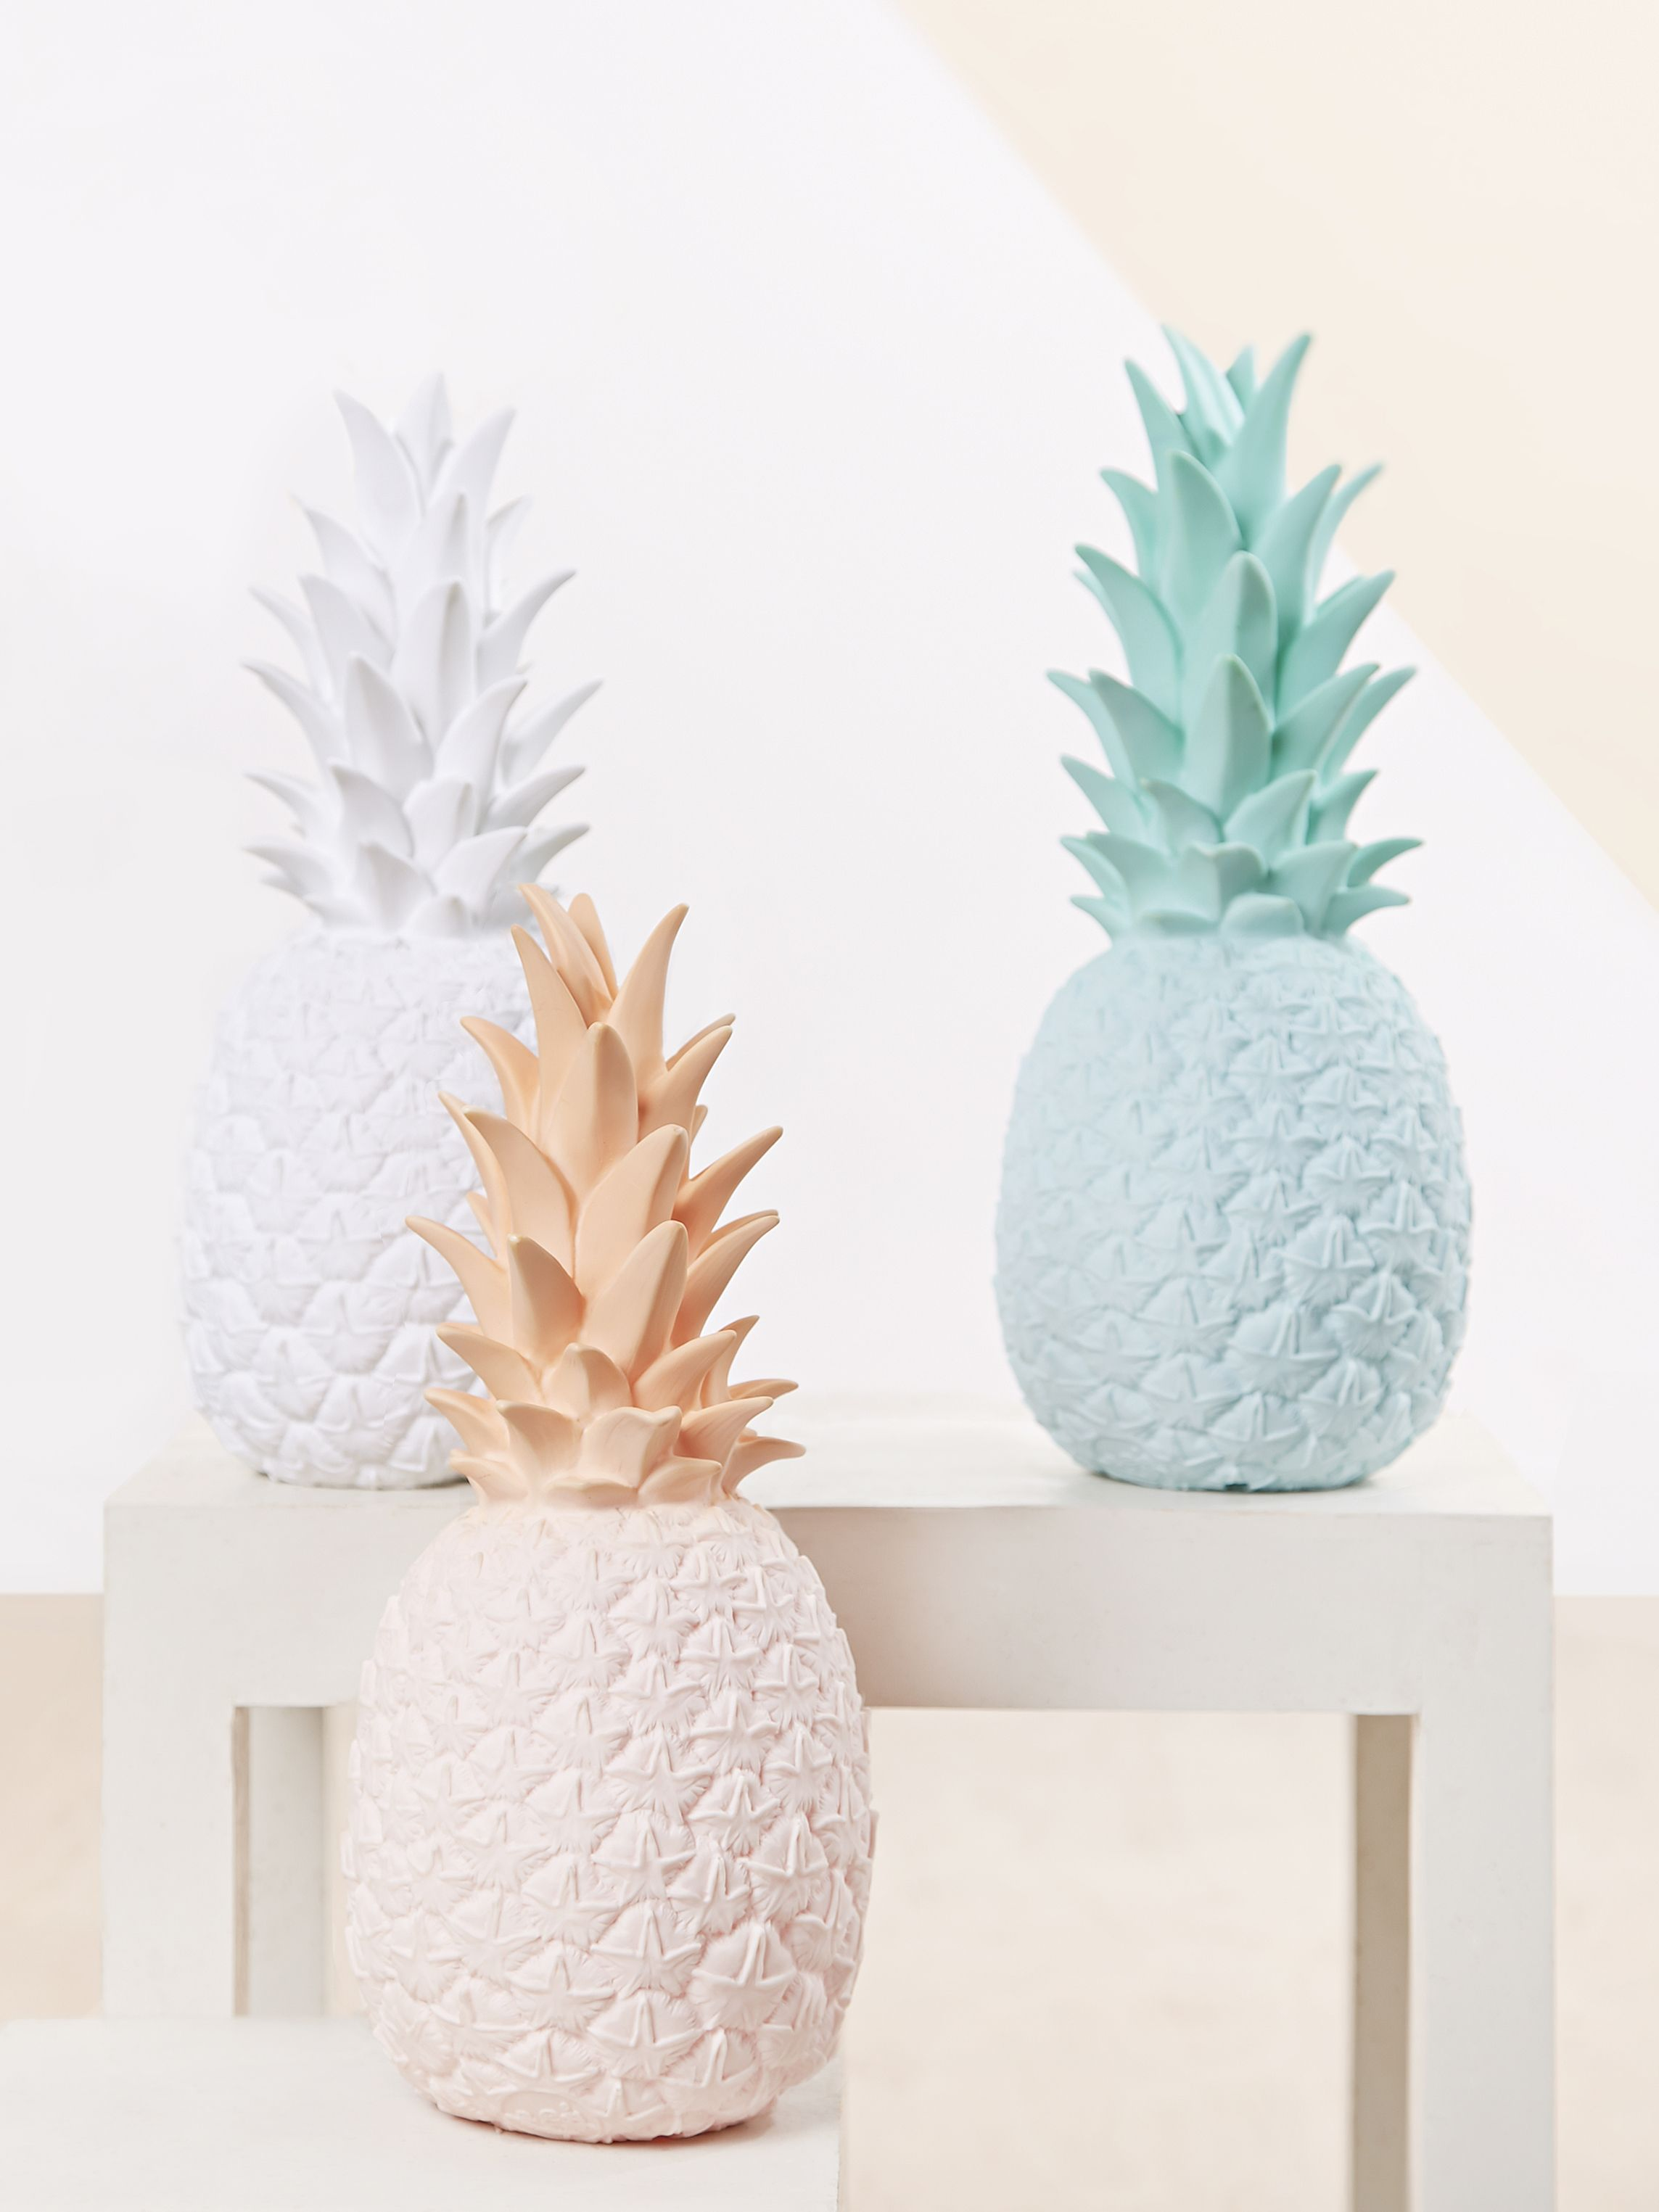 Lampes d co en forme d 39 ananas couleur pastel id es for Decoration objet interieur